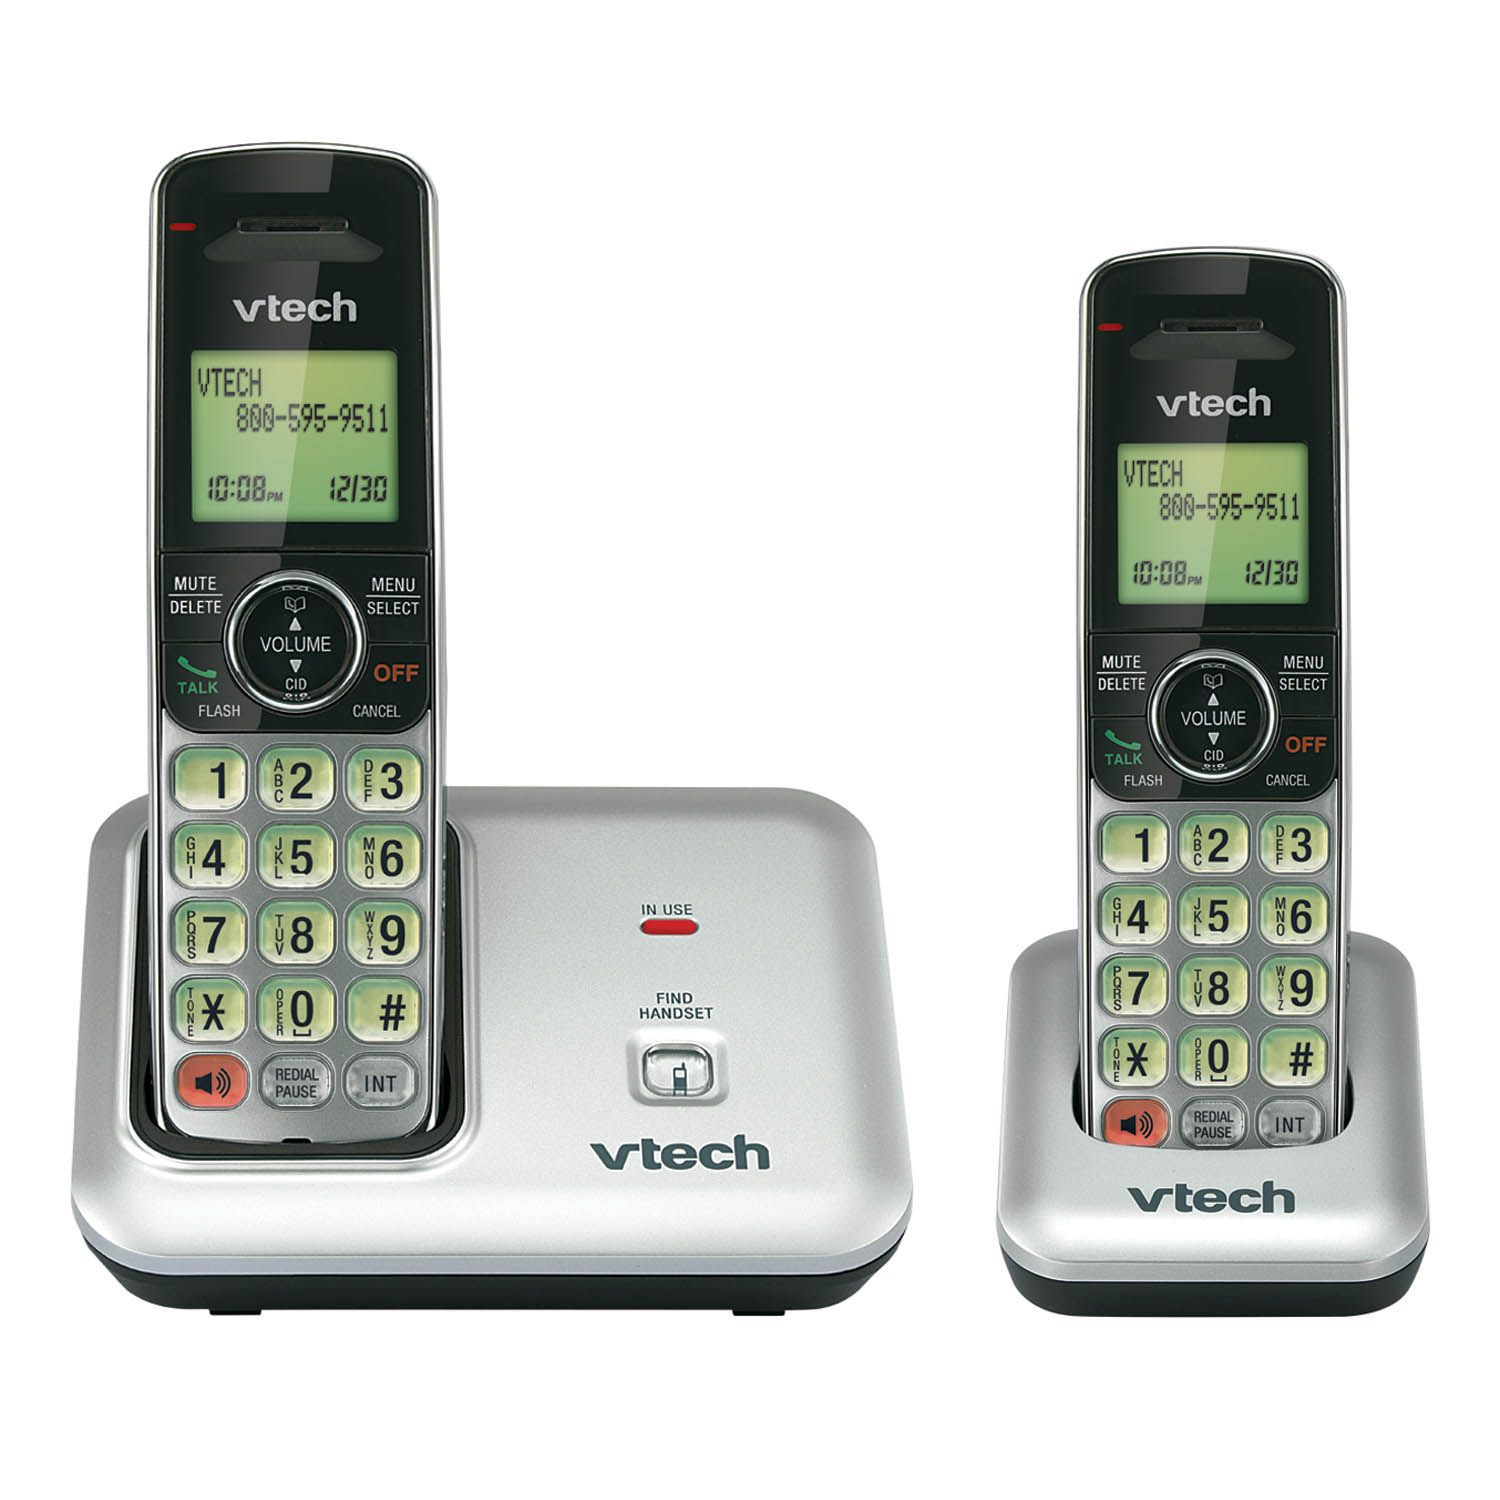 Wireless Phone Vtech Two Handset Cordless Phone System Cs6419 2 Energy